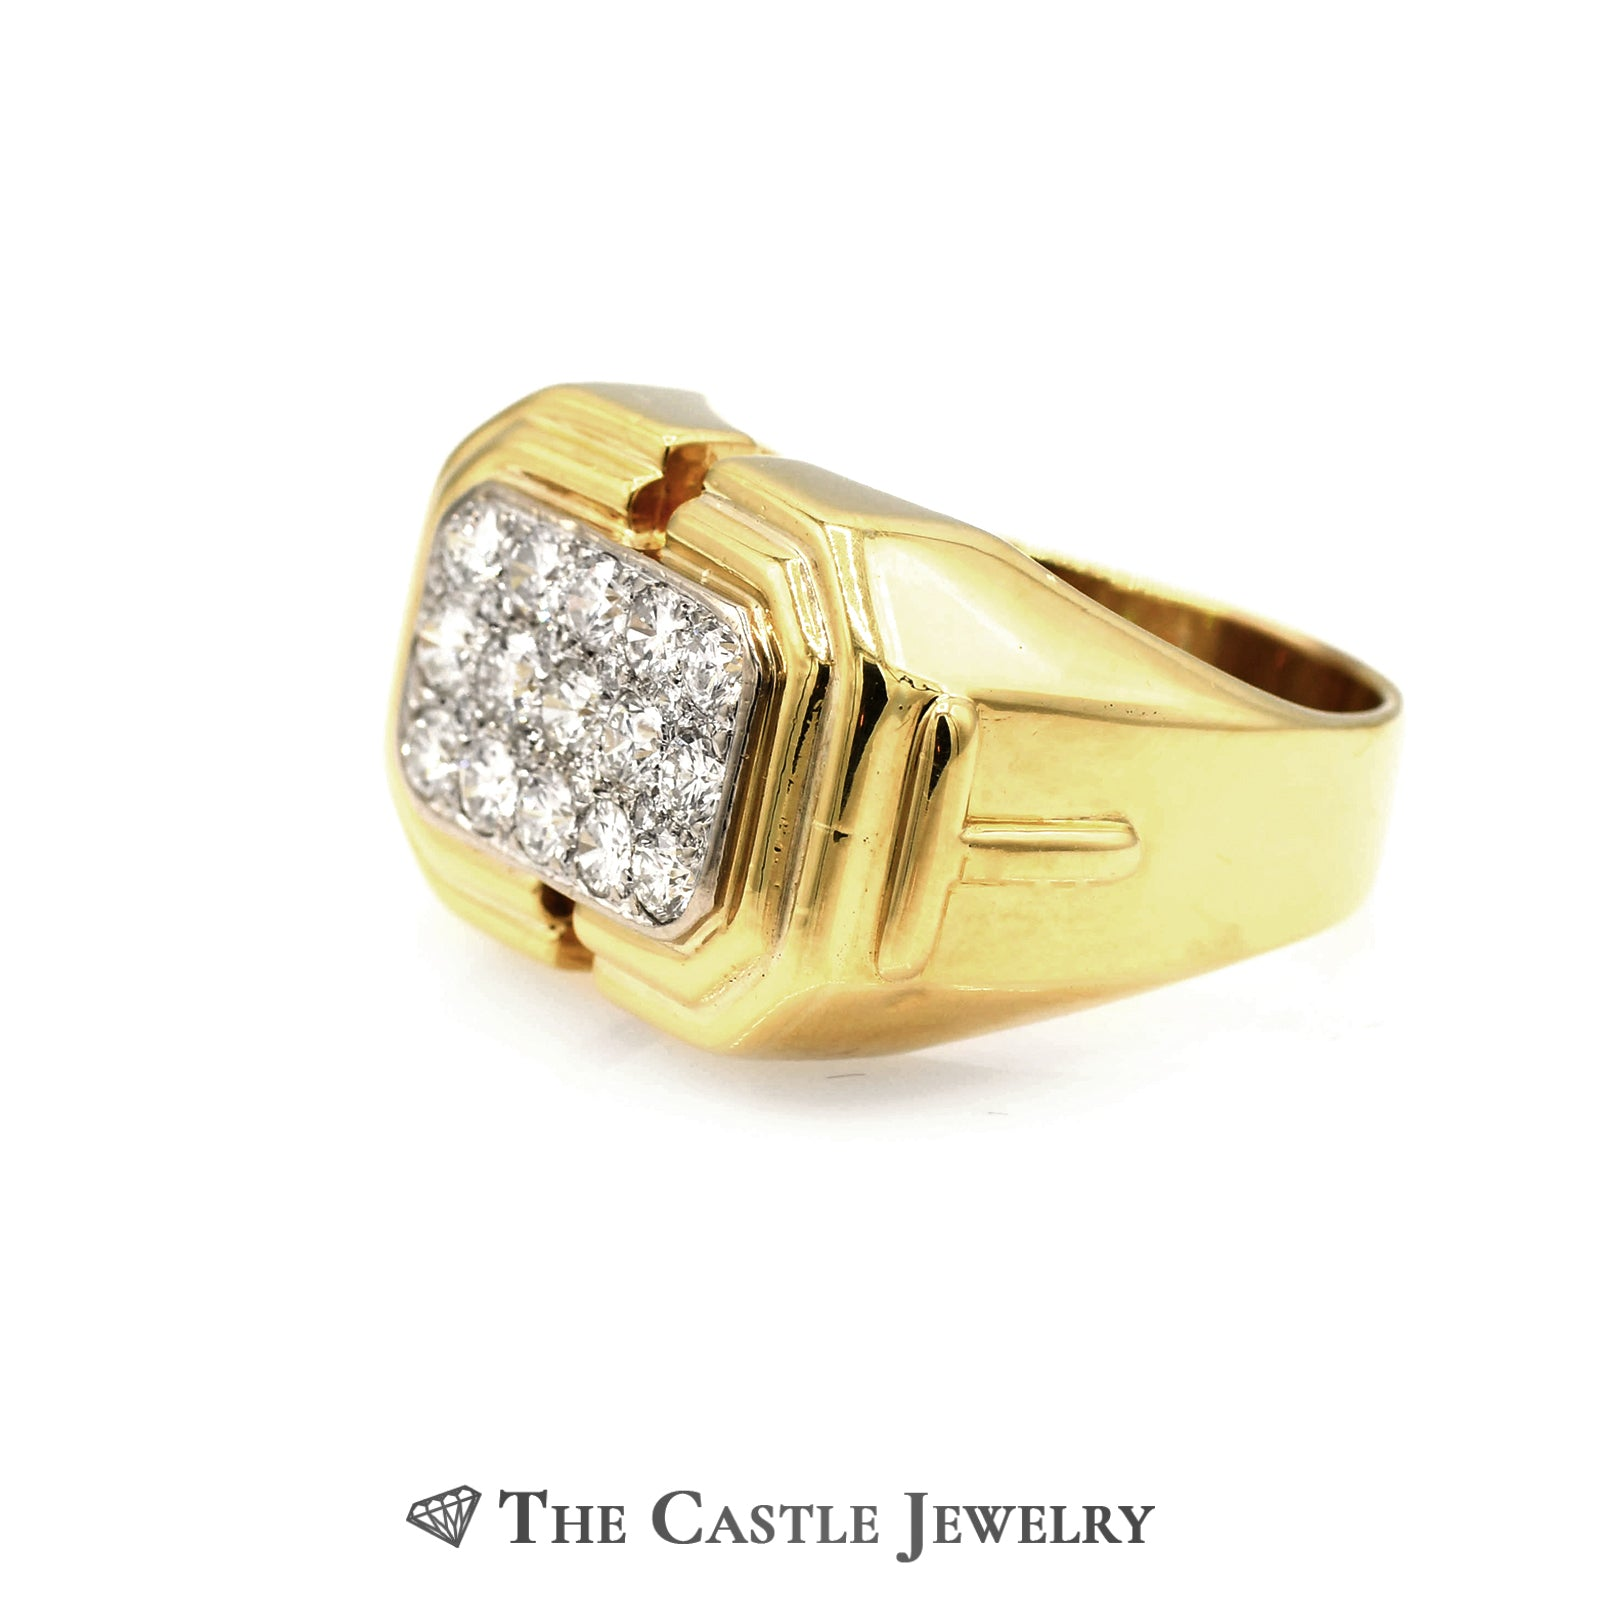 Men's Rectangle Shaped 1.13cttw Diamond Cluster Ring in 18k Yellow Gold-2